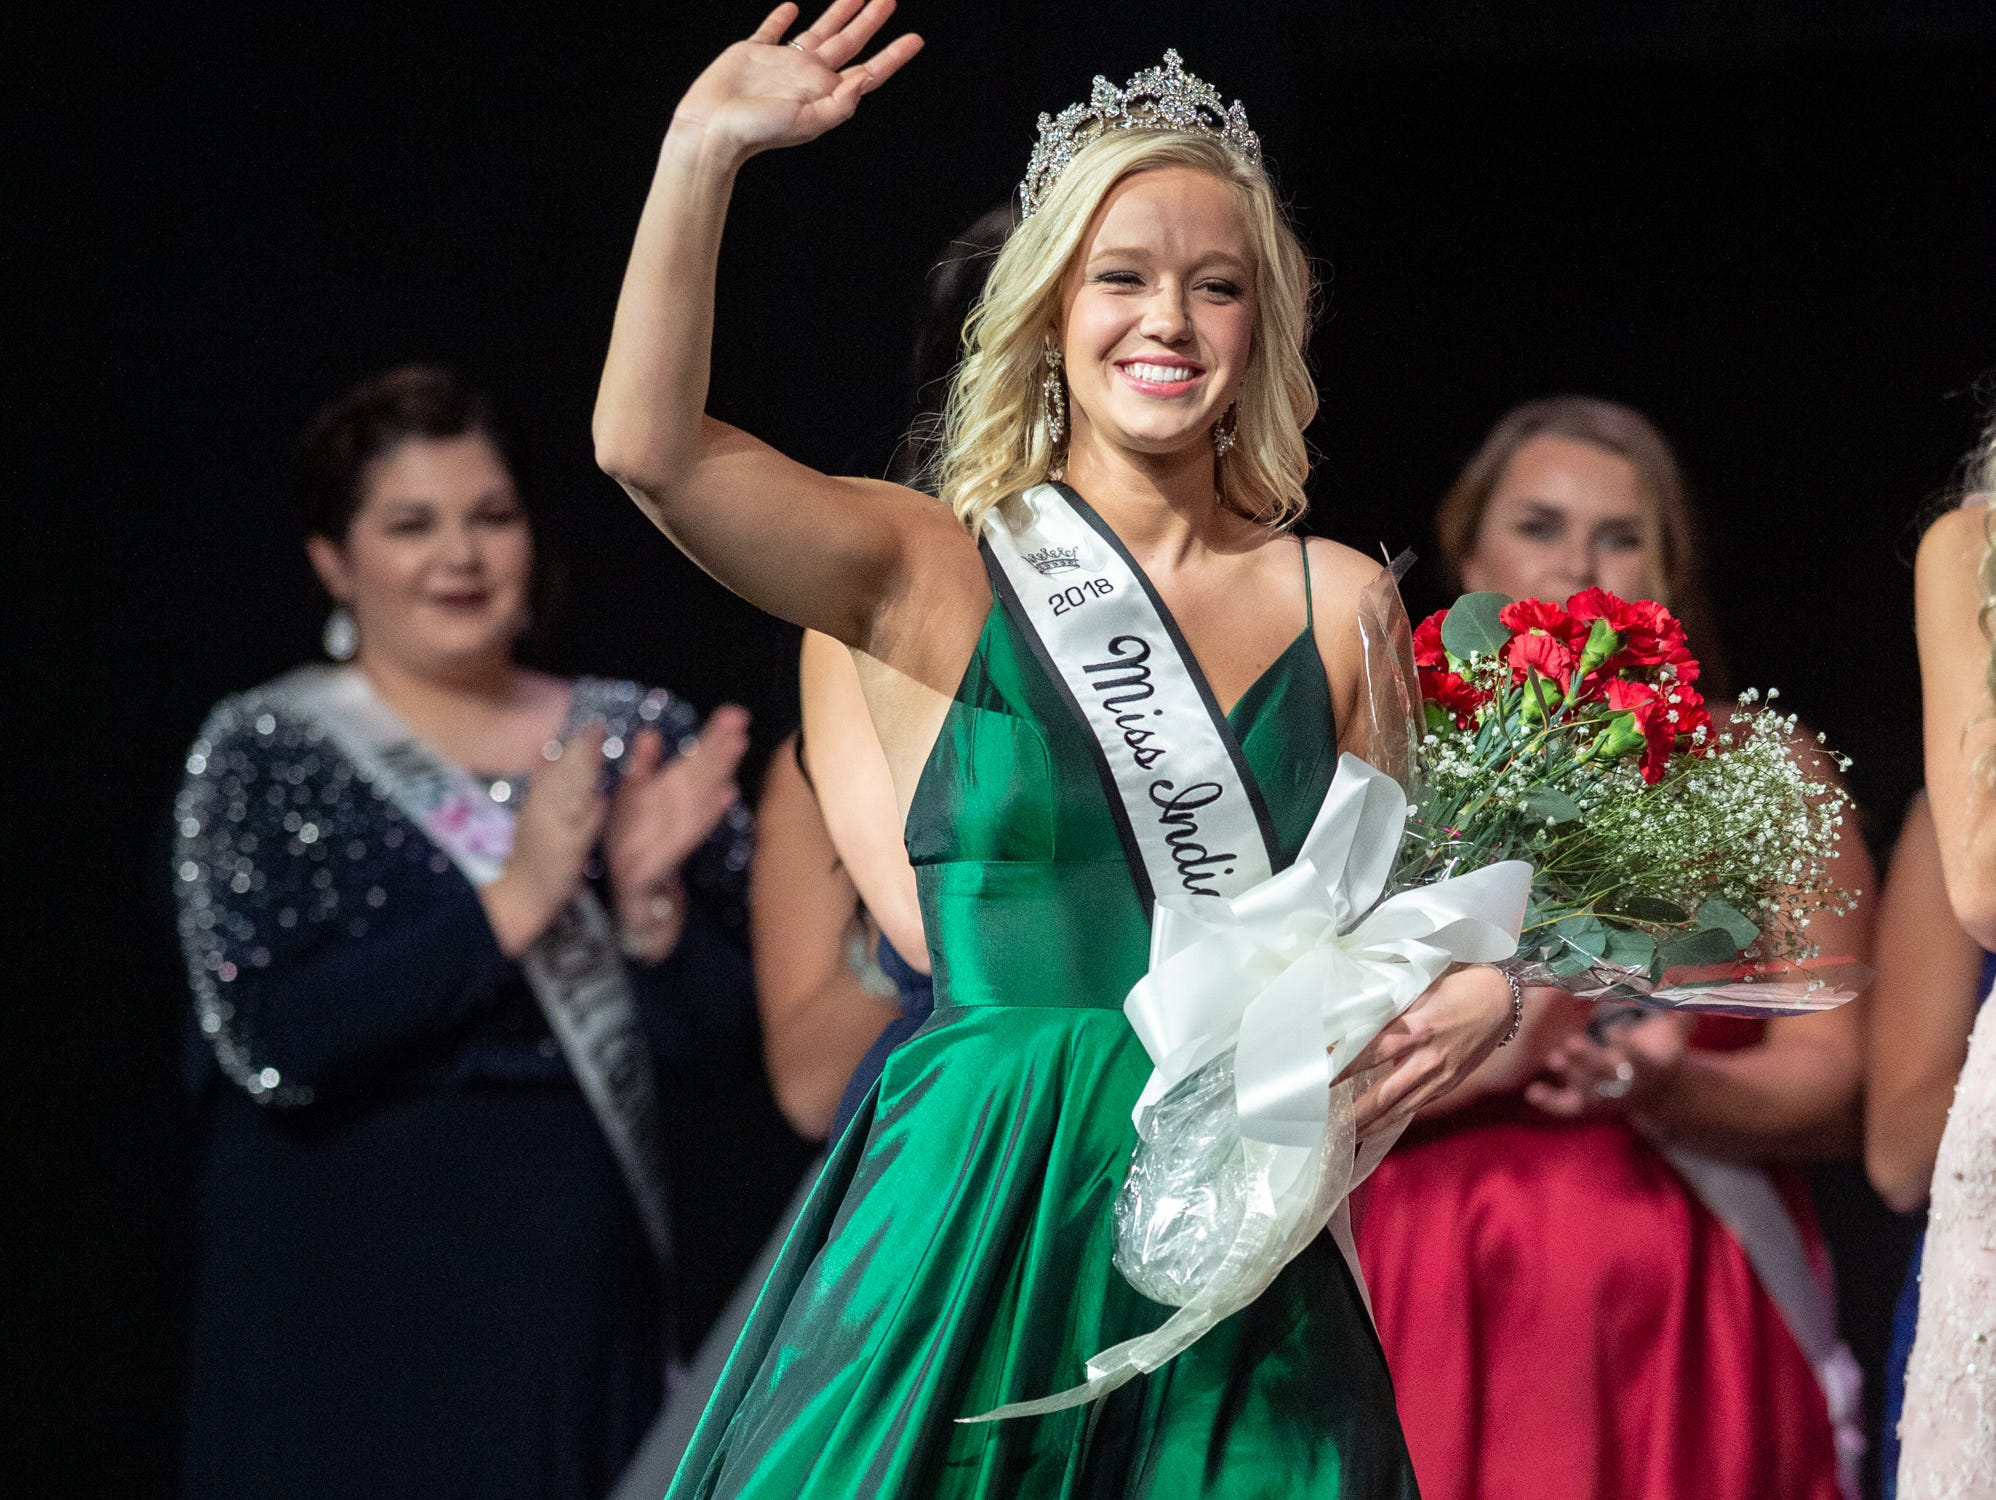 Miss Indiana State Fait 2018, Audrey Campbell, makes an appearance on stage during the 61st Indiana State Fair Queen Pageant at the Indiana State Fairgrounds in Indianapolis on Sunday, Jan. 6, 2019.